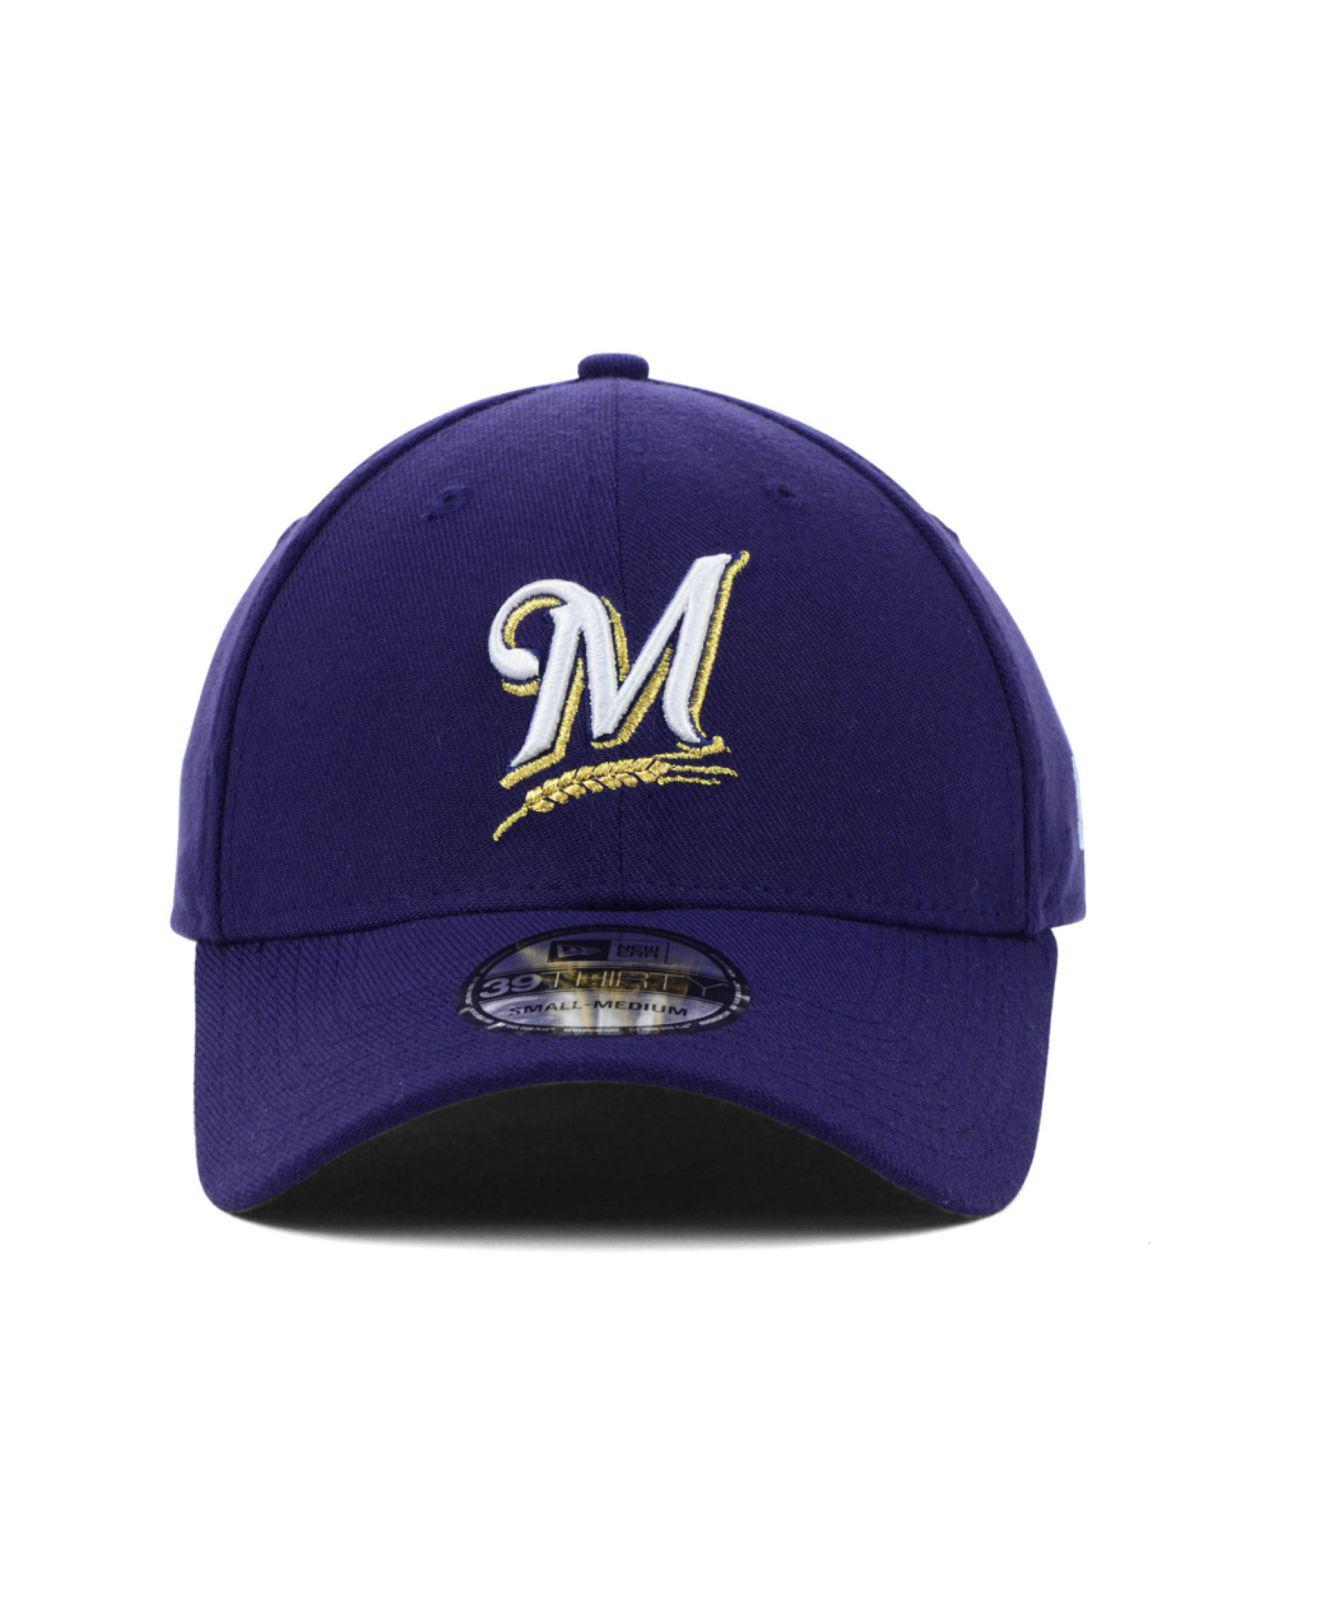 promo code 87f7d 452ec ... free shipping lyst ktz milwaukee brewers mlb team classic 39thirty cap  in blue for men 49343